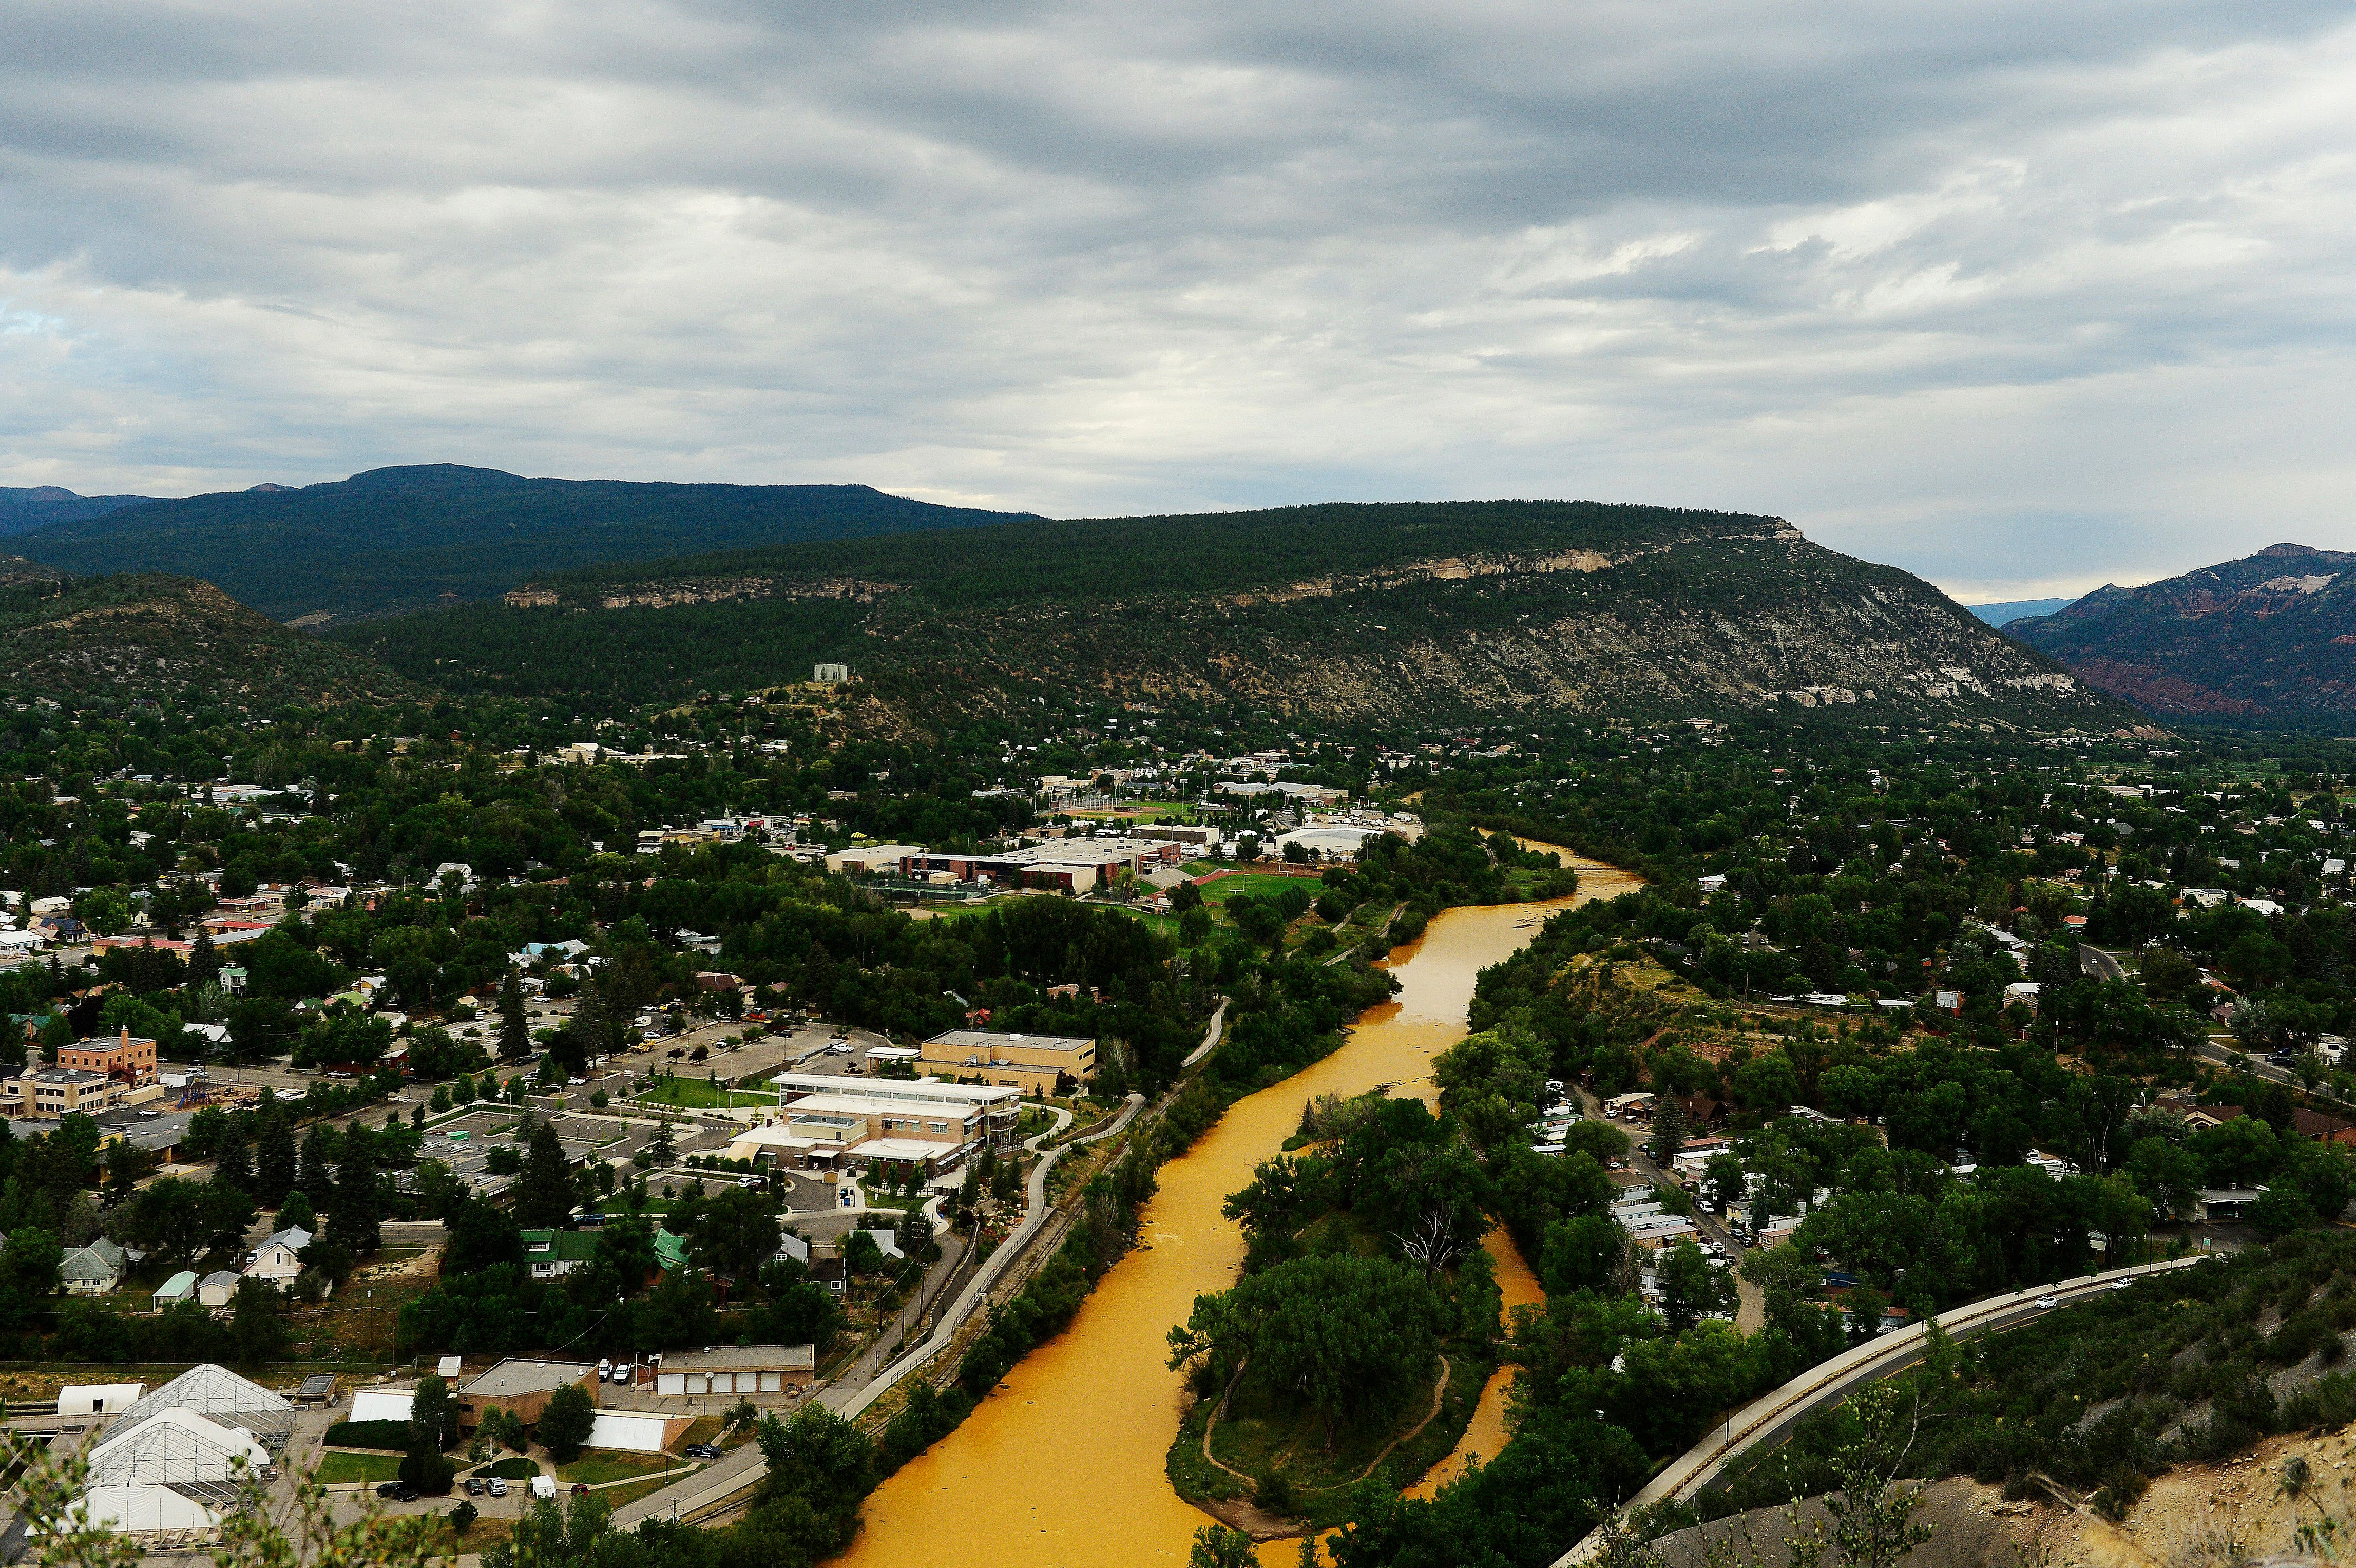 DURANGO, CO - AUGUST 7: The Animas River flows through the center of Durango on August 7, 2015 along Animas River. Over a million gallons of mine wastewater has made it's way into the Animas River closing the river and put the city of Durango on alert. (Photo By Brent Lewis/The Denver Post via Getty Images)